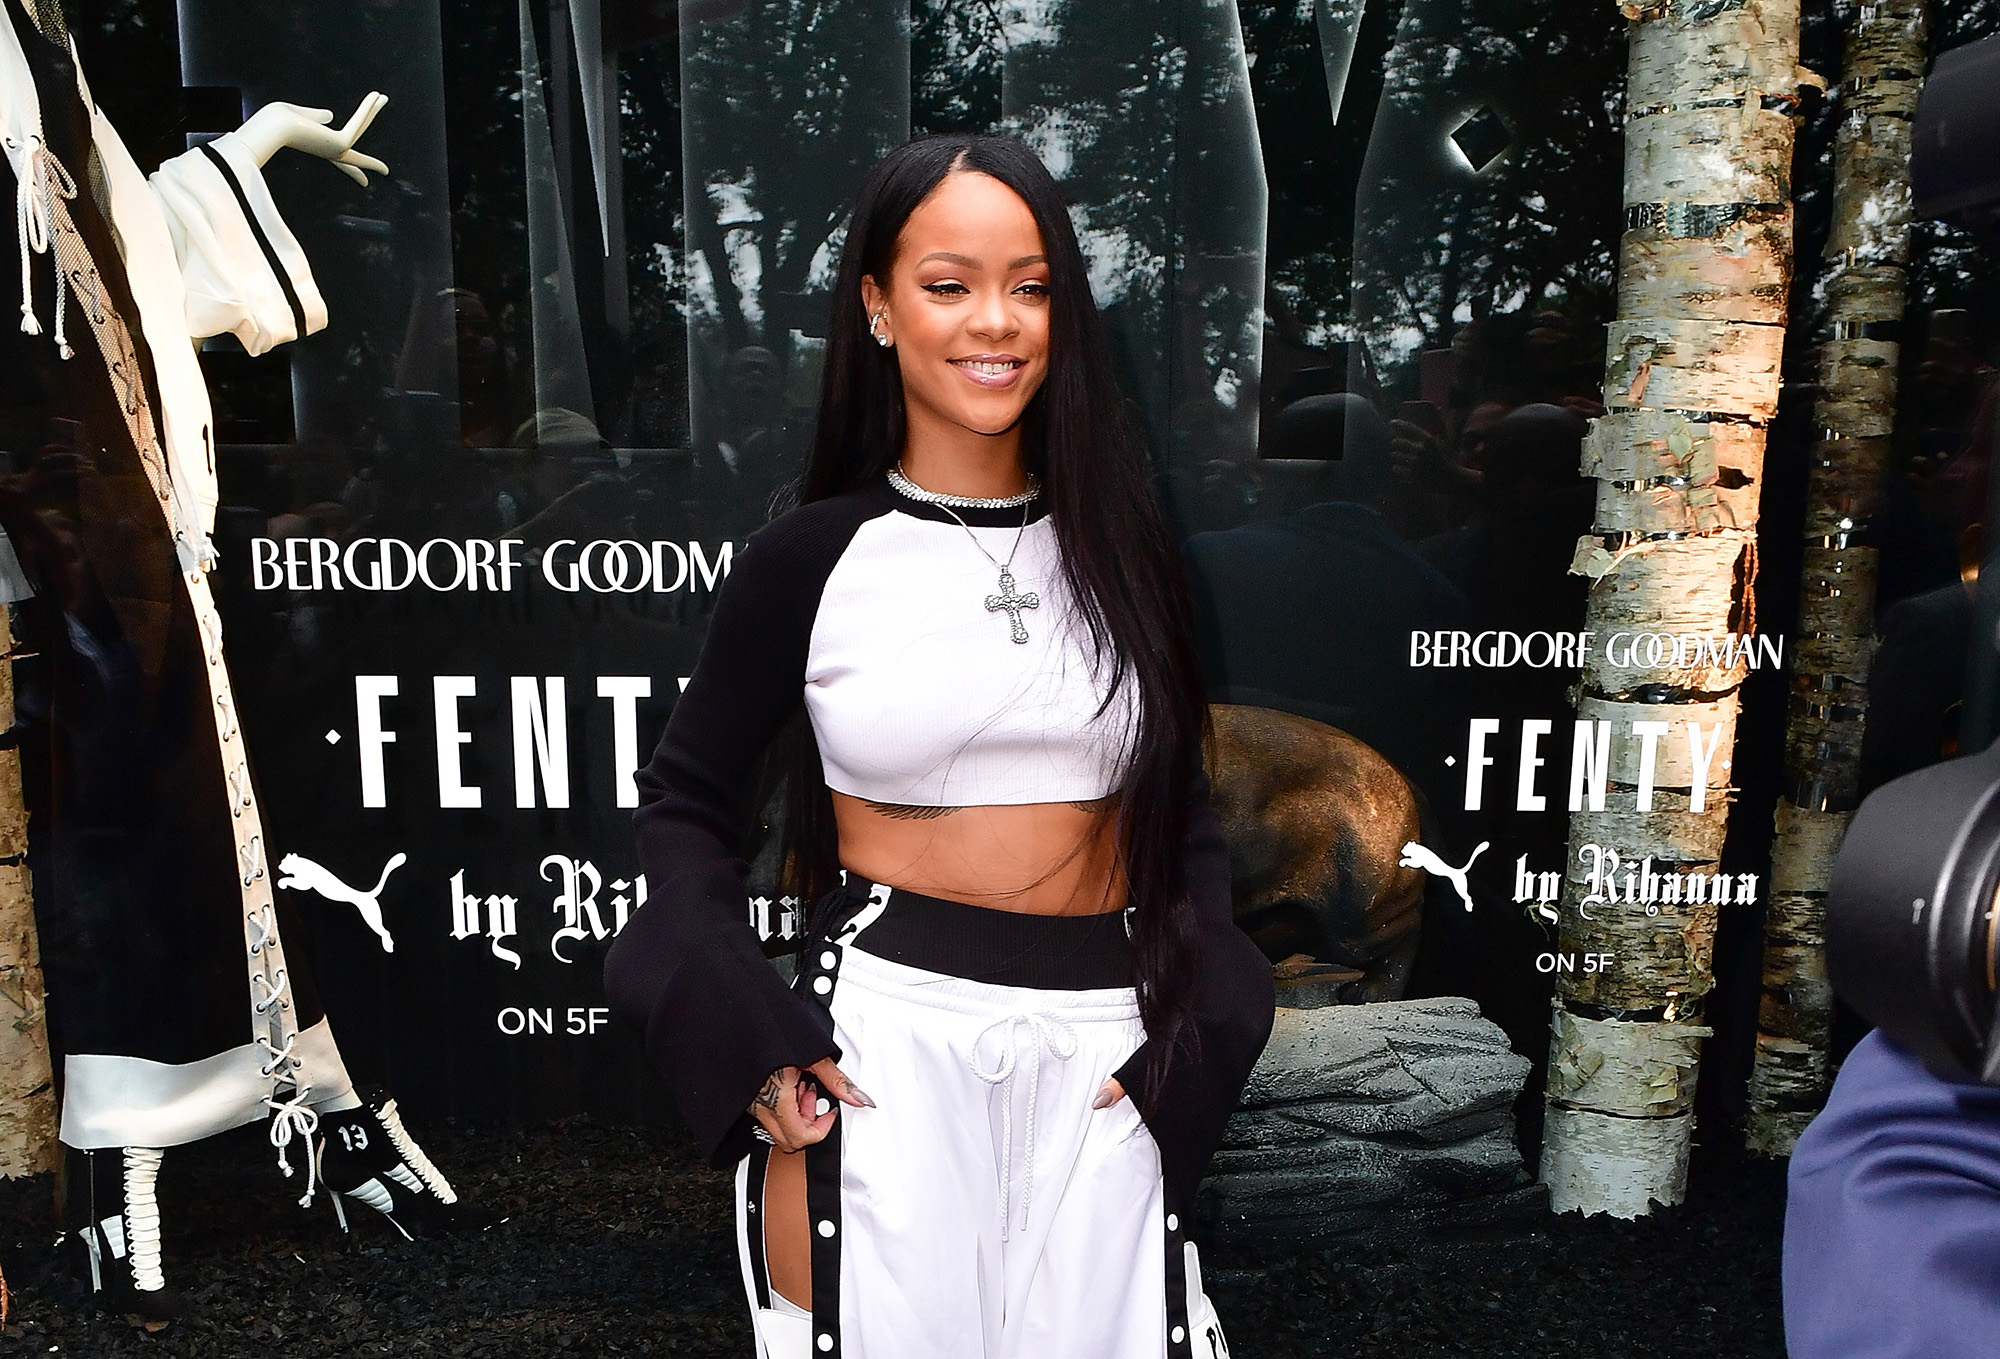 Rihanna attends the Launch of FENTY PUMA By Rihanna at Bergdorf Goodman  on September 6, 2016 in New York City.  (Photo by James Devaney/GC Images)